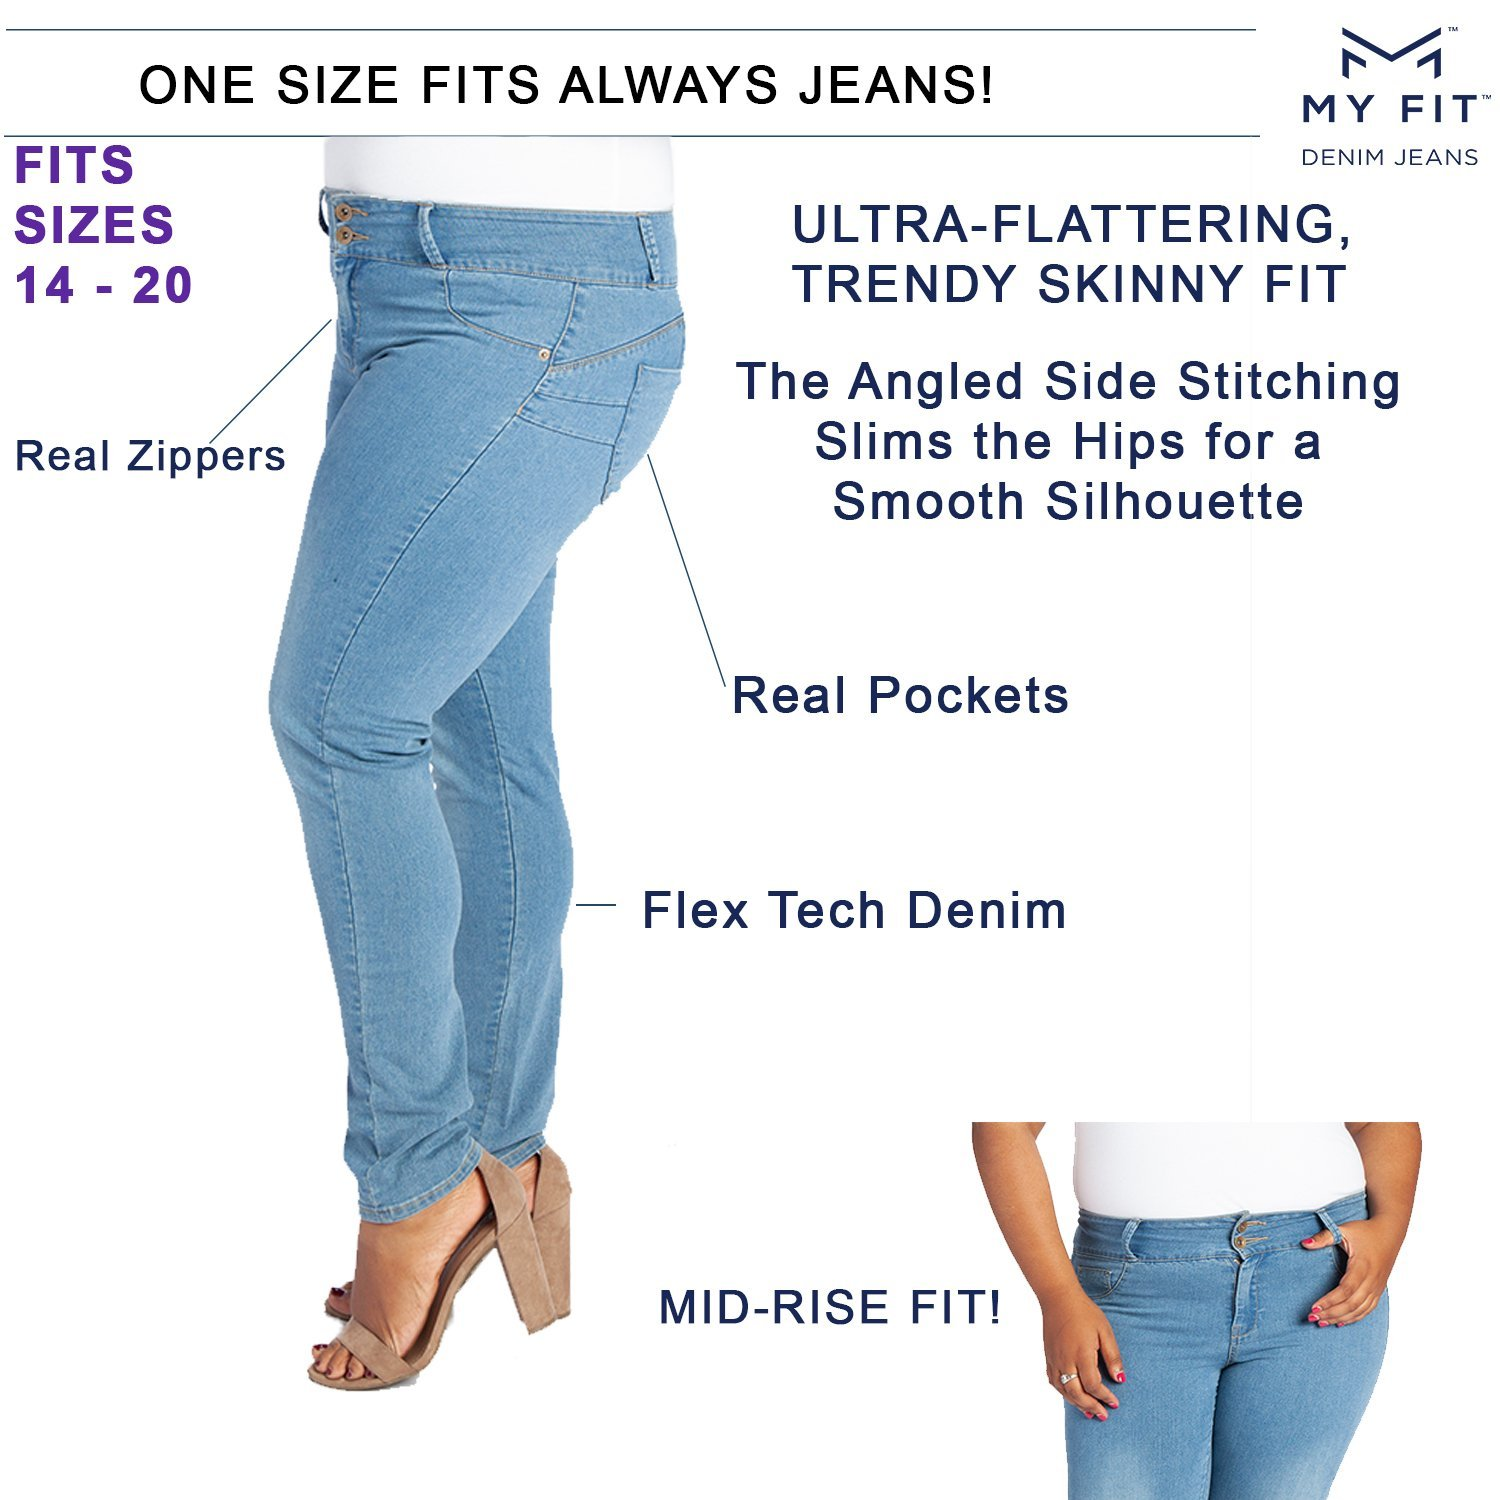 c0de6343b43 Amazon.com  My Fit Jeans- SIZE 14-20 LIGHT WASH  Women s Stretch Denim Jeans  with Pockets and the Comfort of Leggings